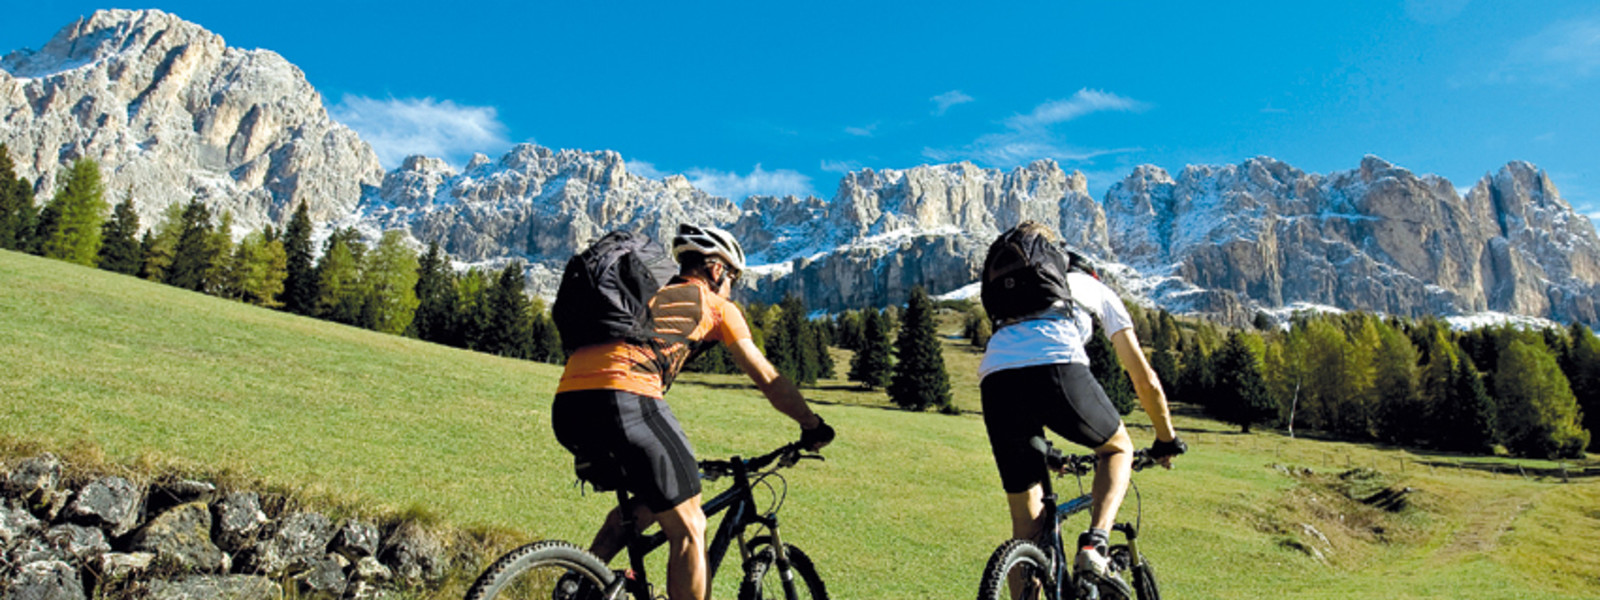 Zwei Mountainbiker in den Dolomiten